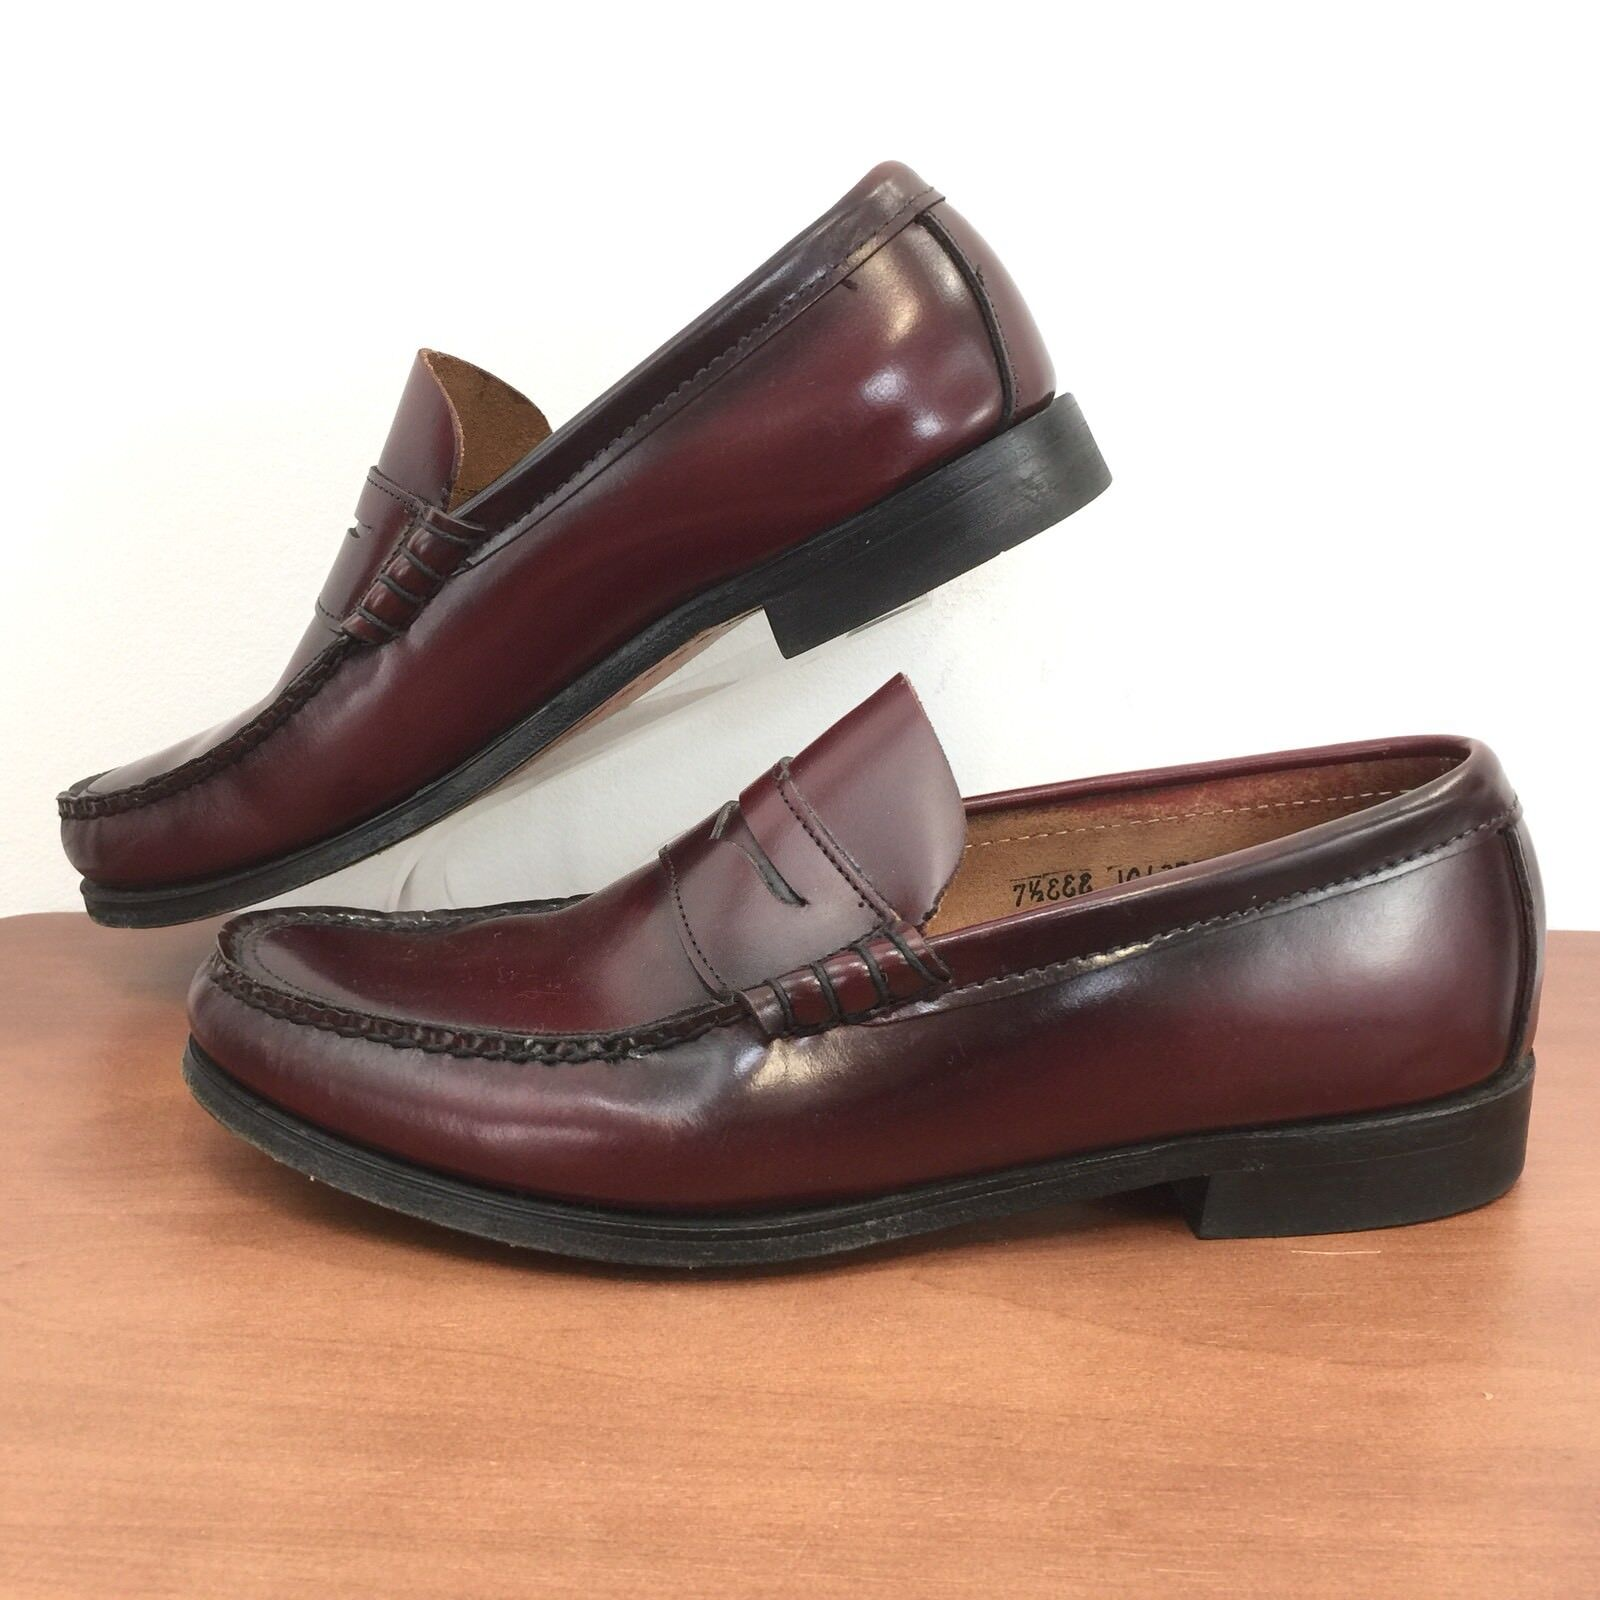 ca7eba555437 St Johns Bay Mens Size 7.5 7.5 7.5 EEE Leather Penny Loafers Great Looking  Mens 7.5 EEE 122dc8